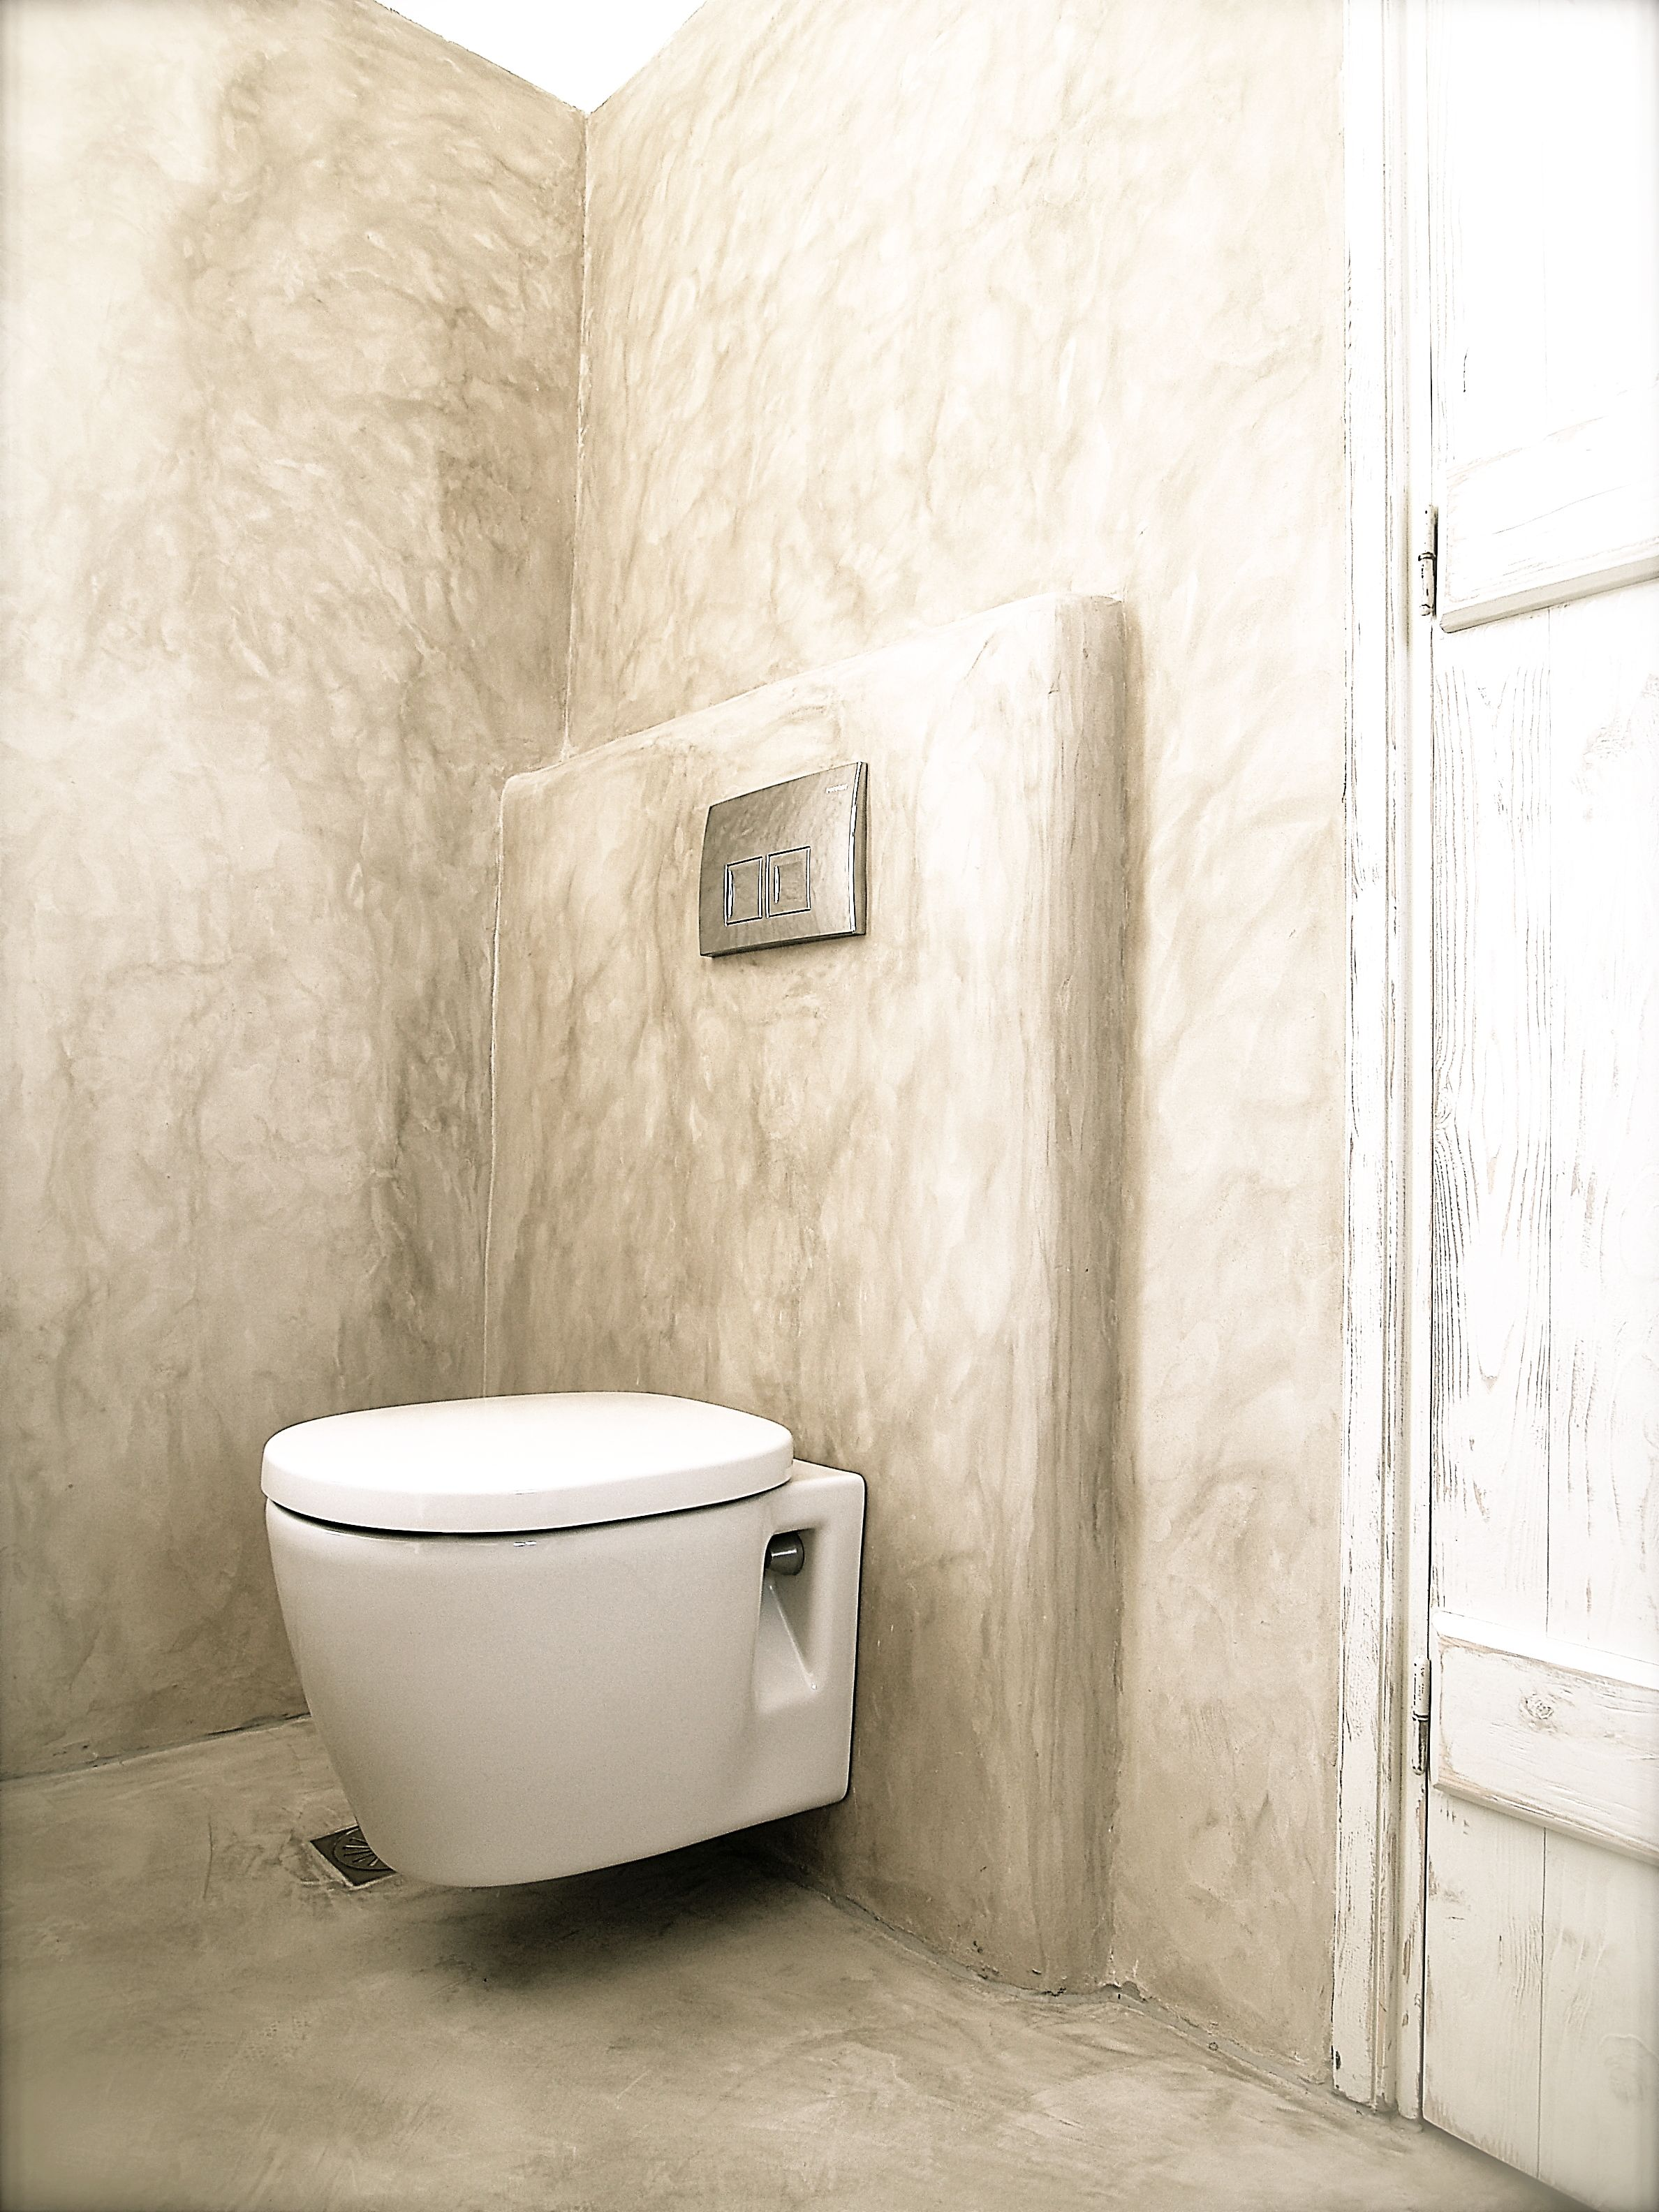 Cement Mortar In A Traditional Built Bathroom